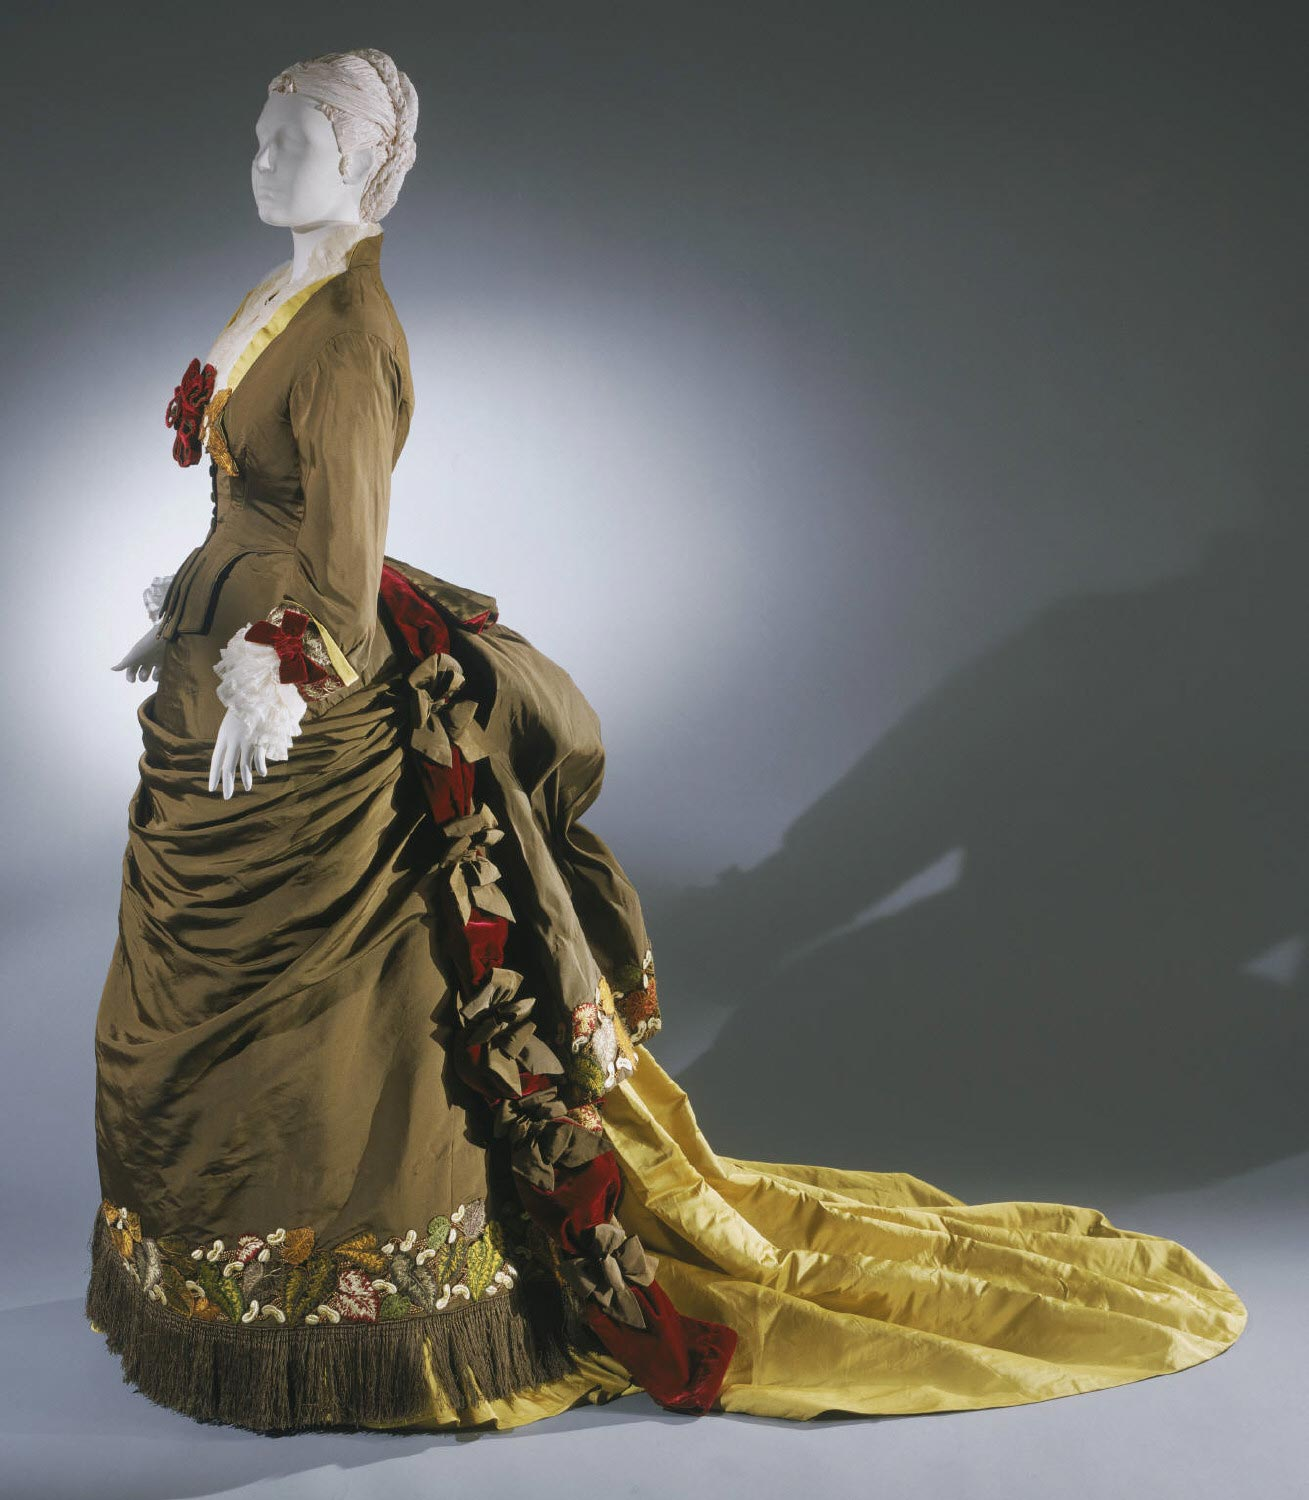 Woman's Dress with Day/Dinner Bodice, Evening Bodice and Skirt